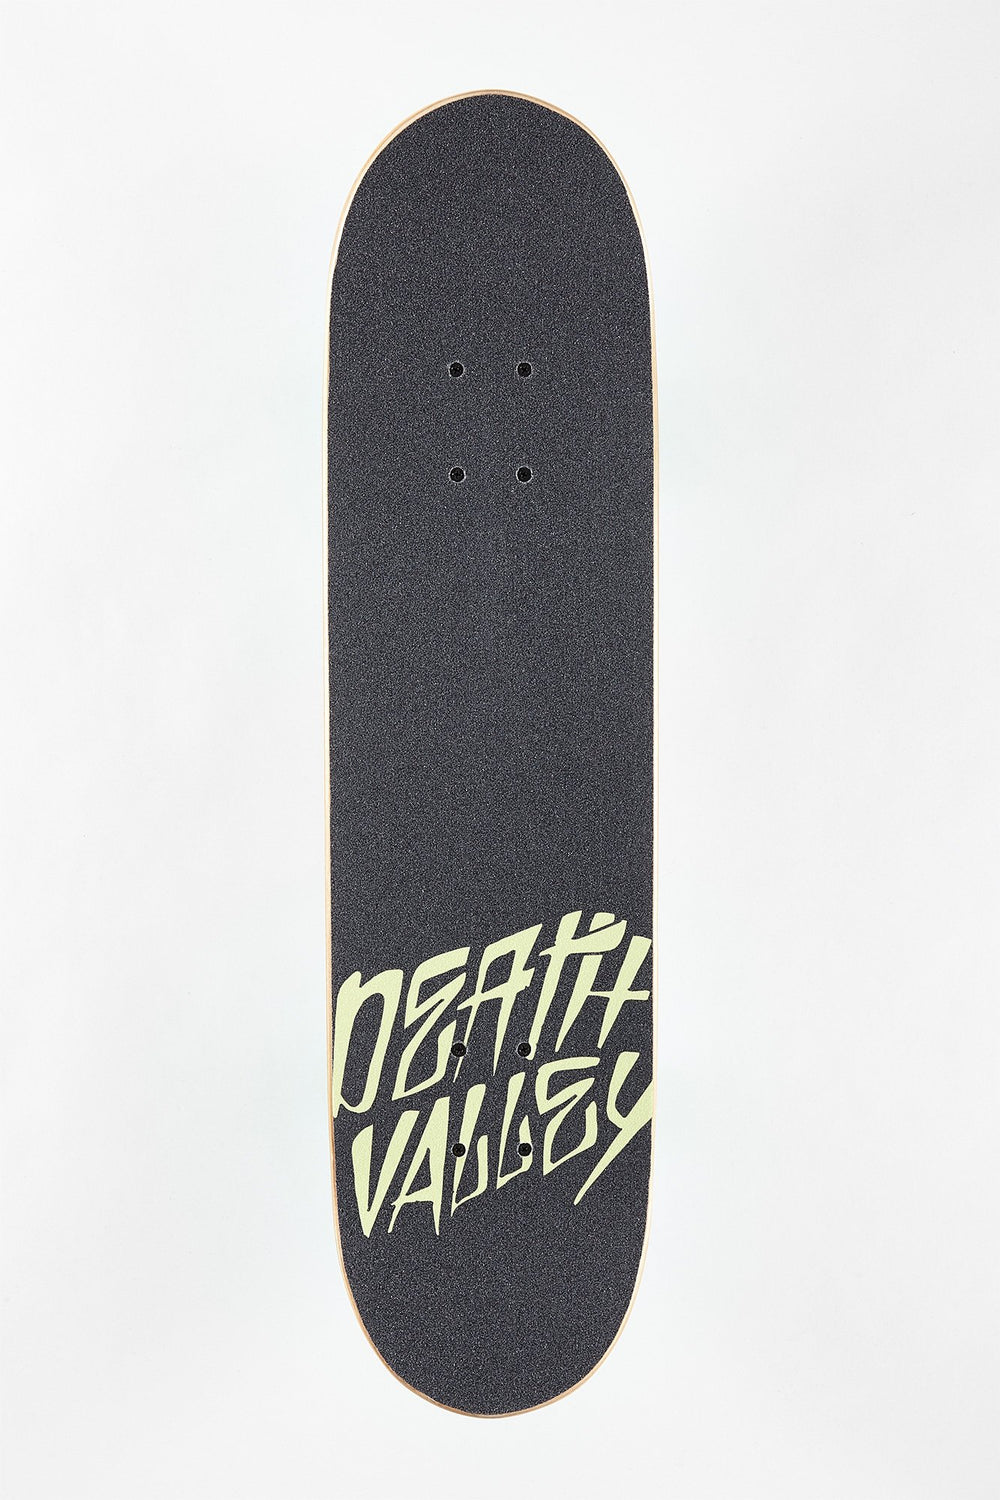 Death Valley Circle Skull Skateboard - 8